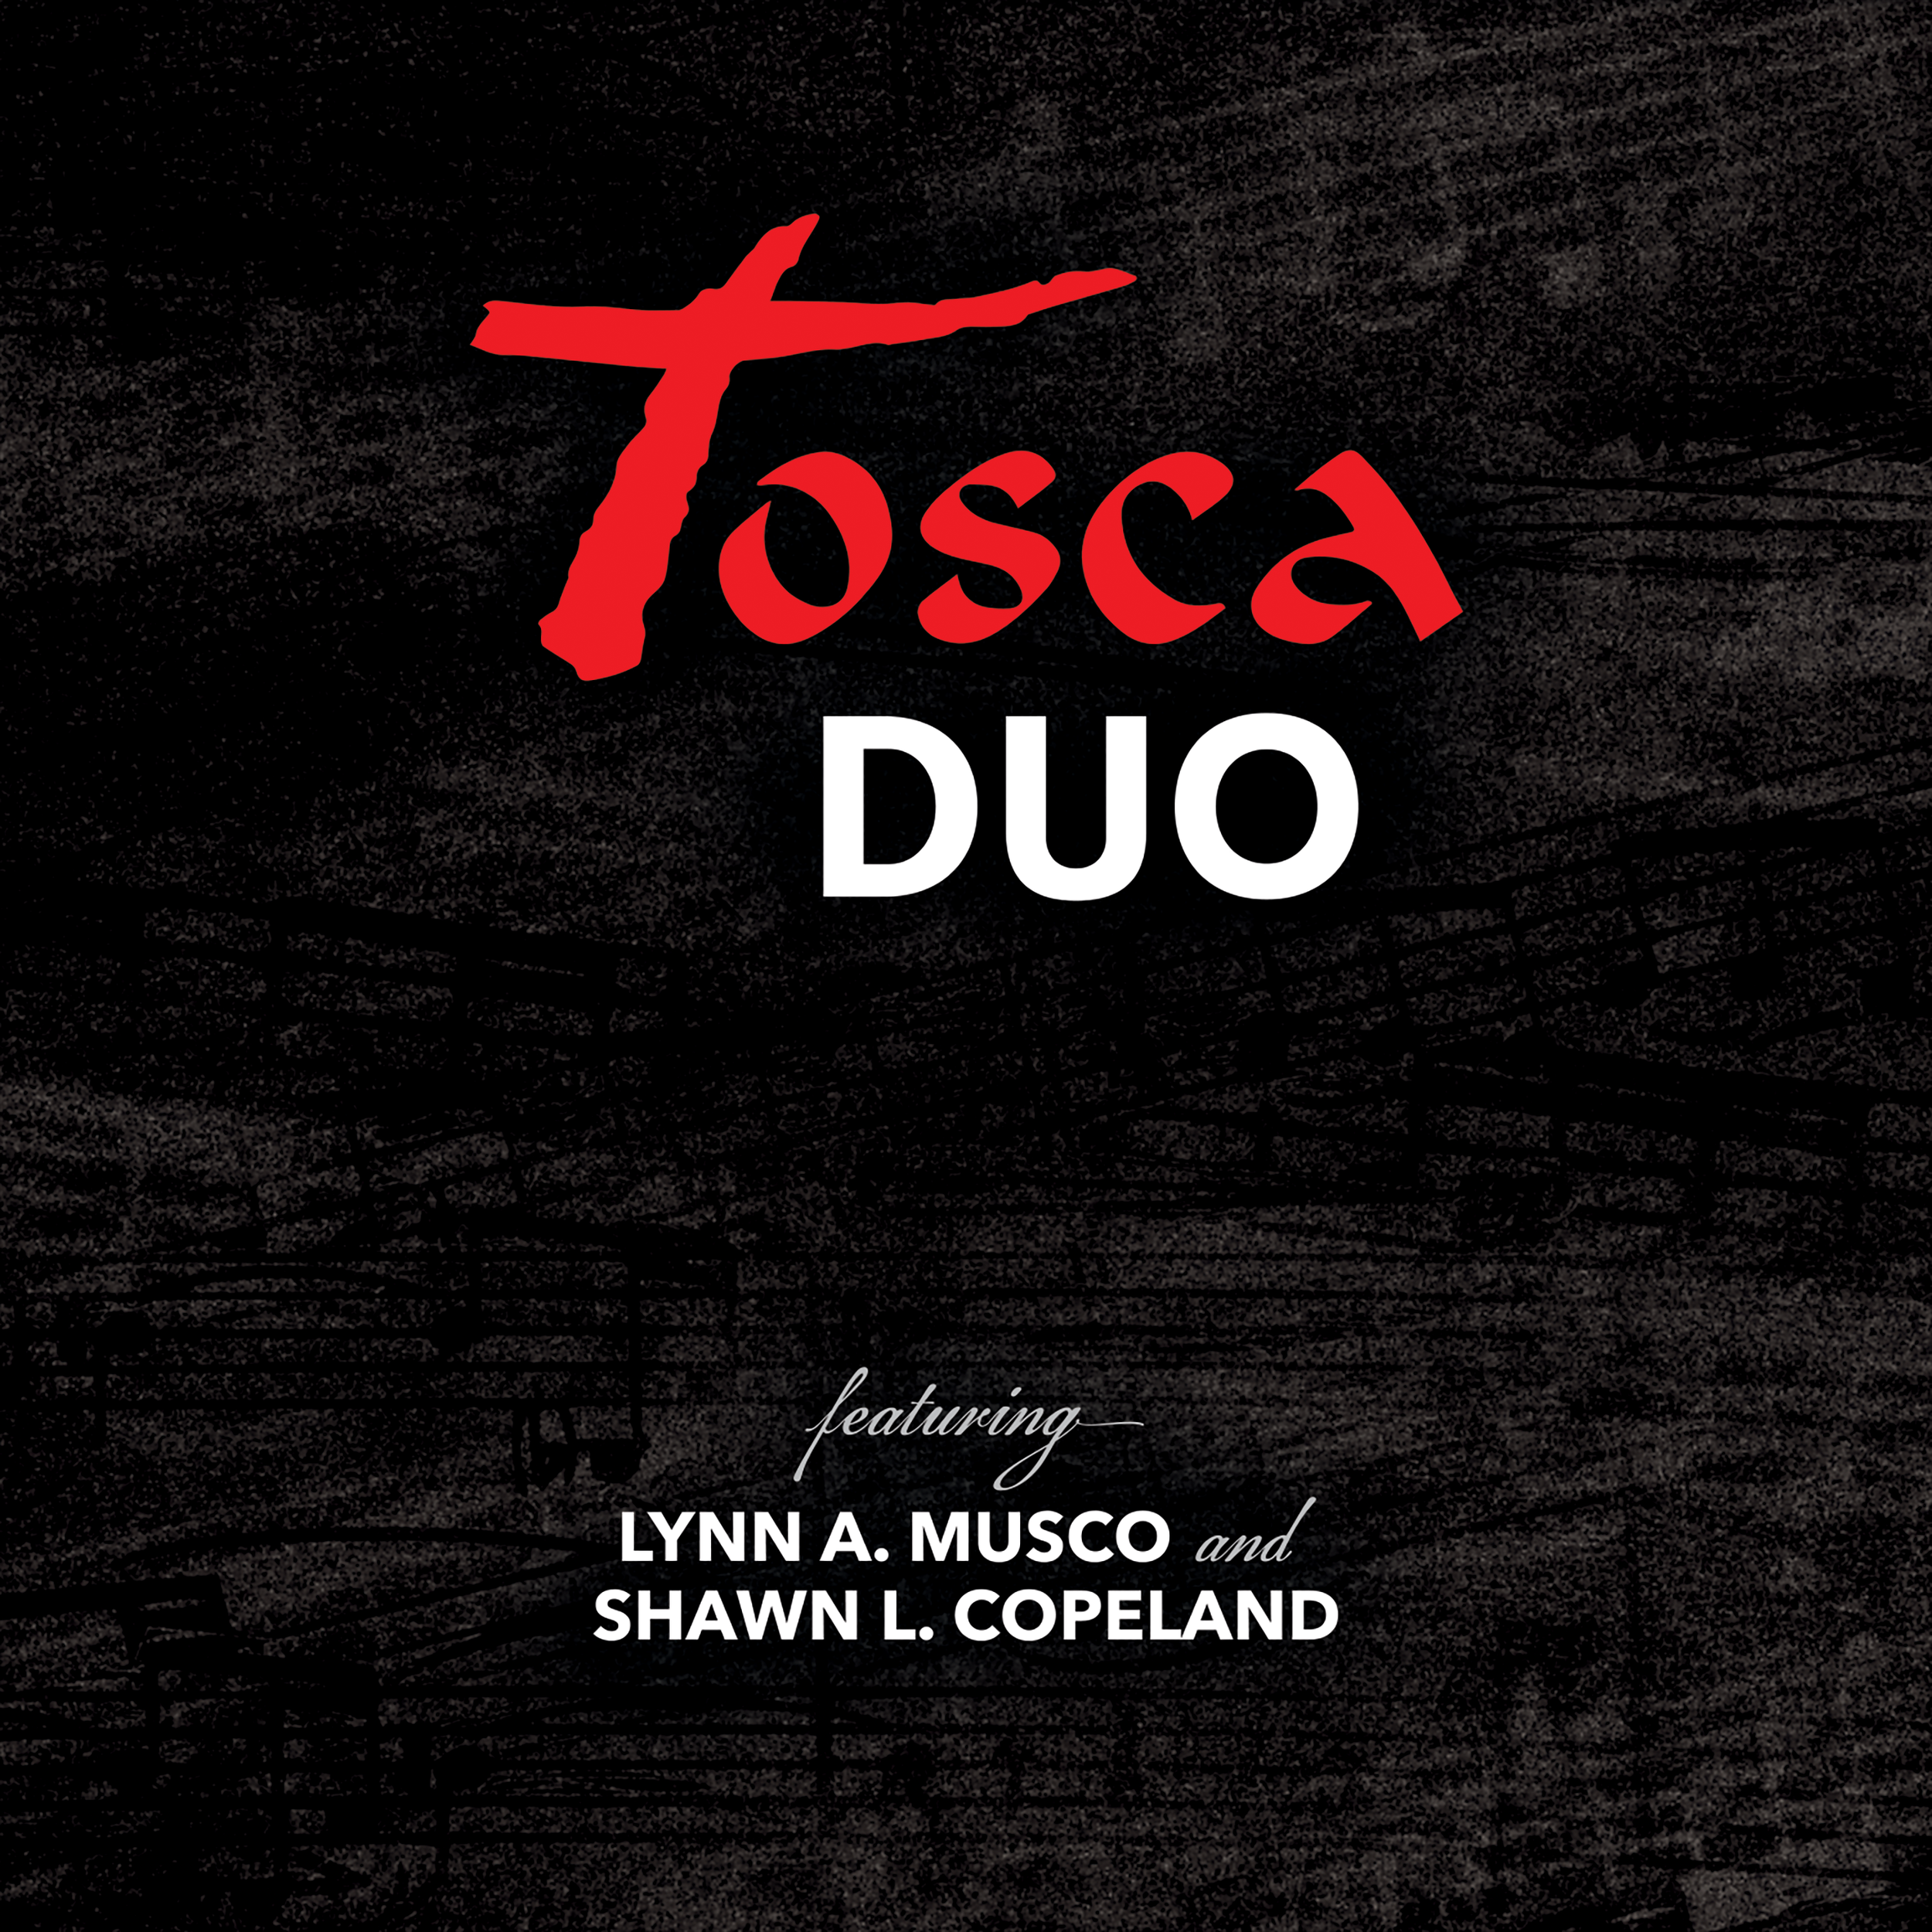 toscaCD1_cover.png